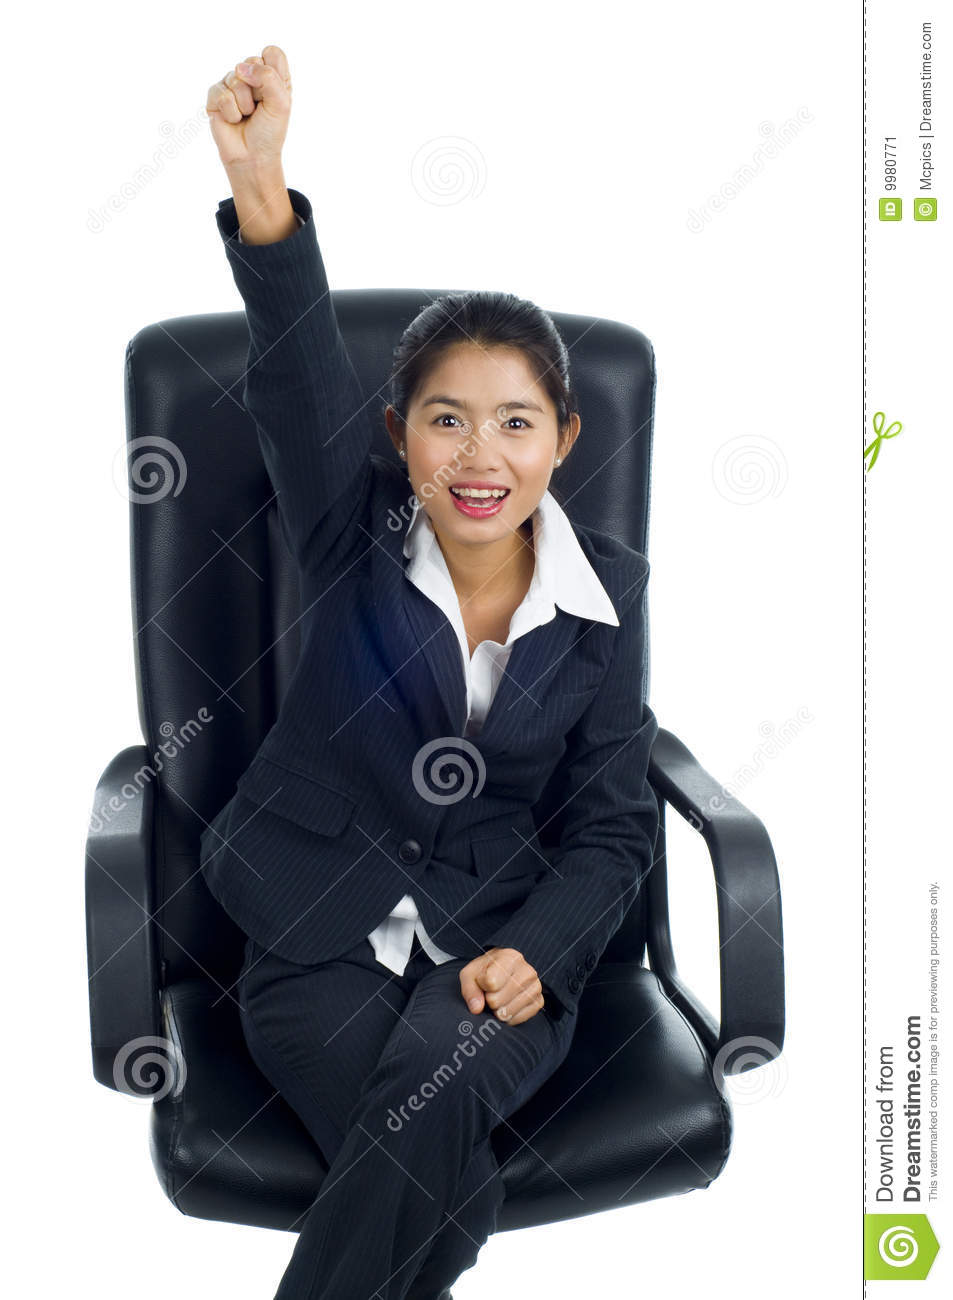 Successful Asian Business Woman Stock Image - Image: 9980771